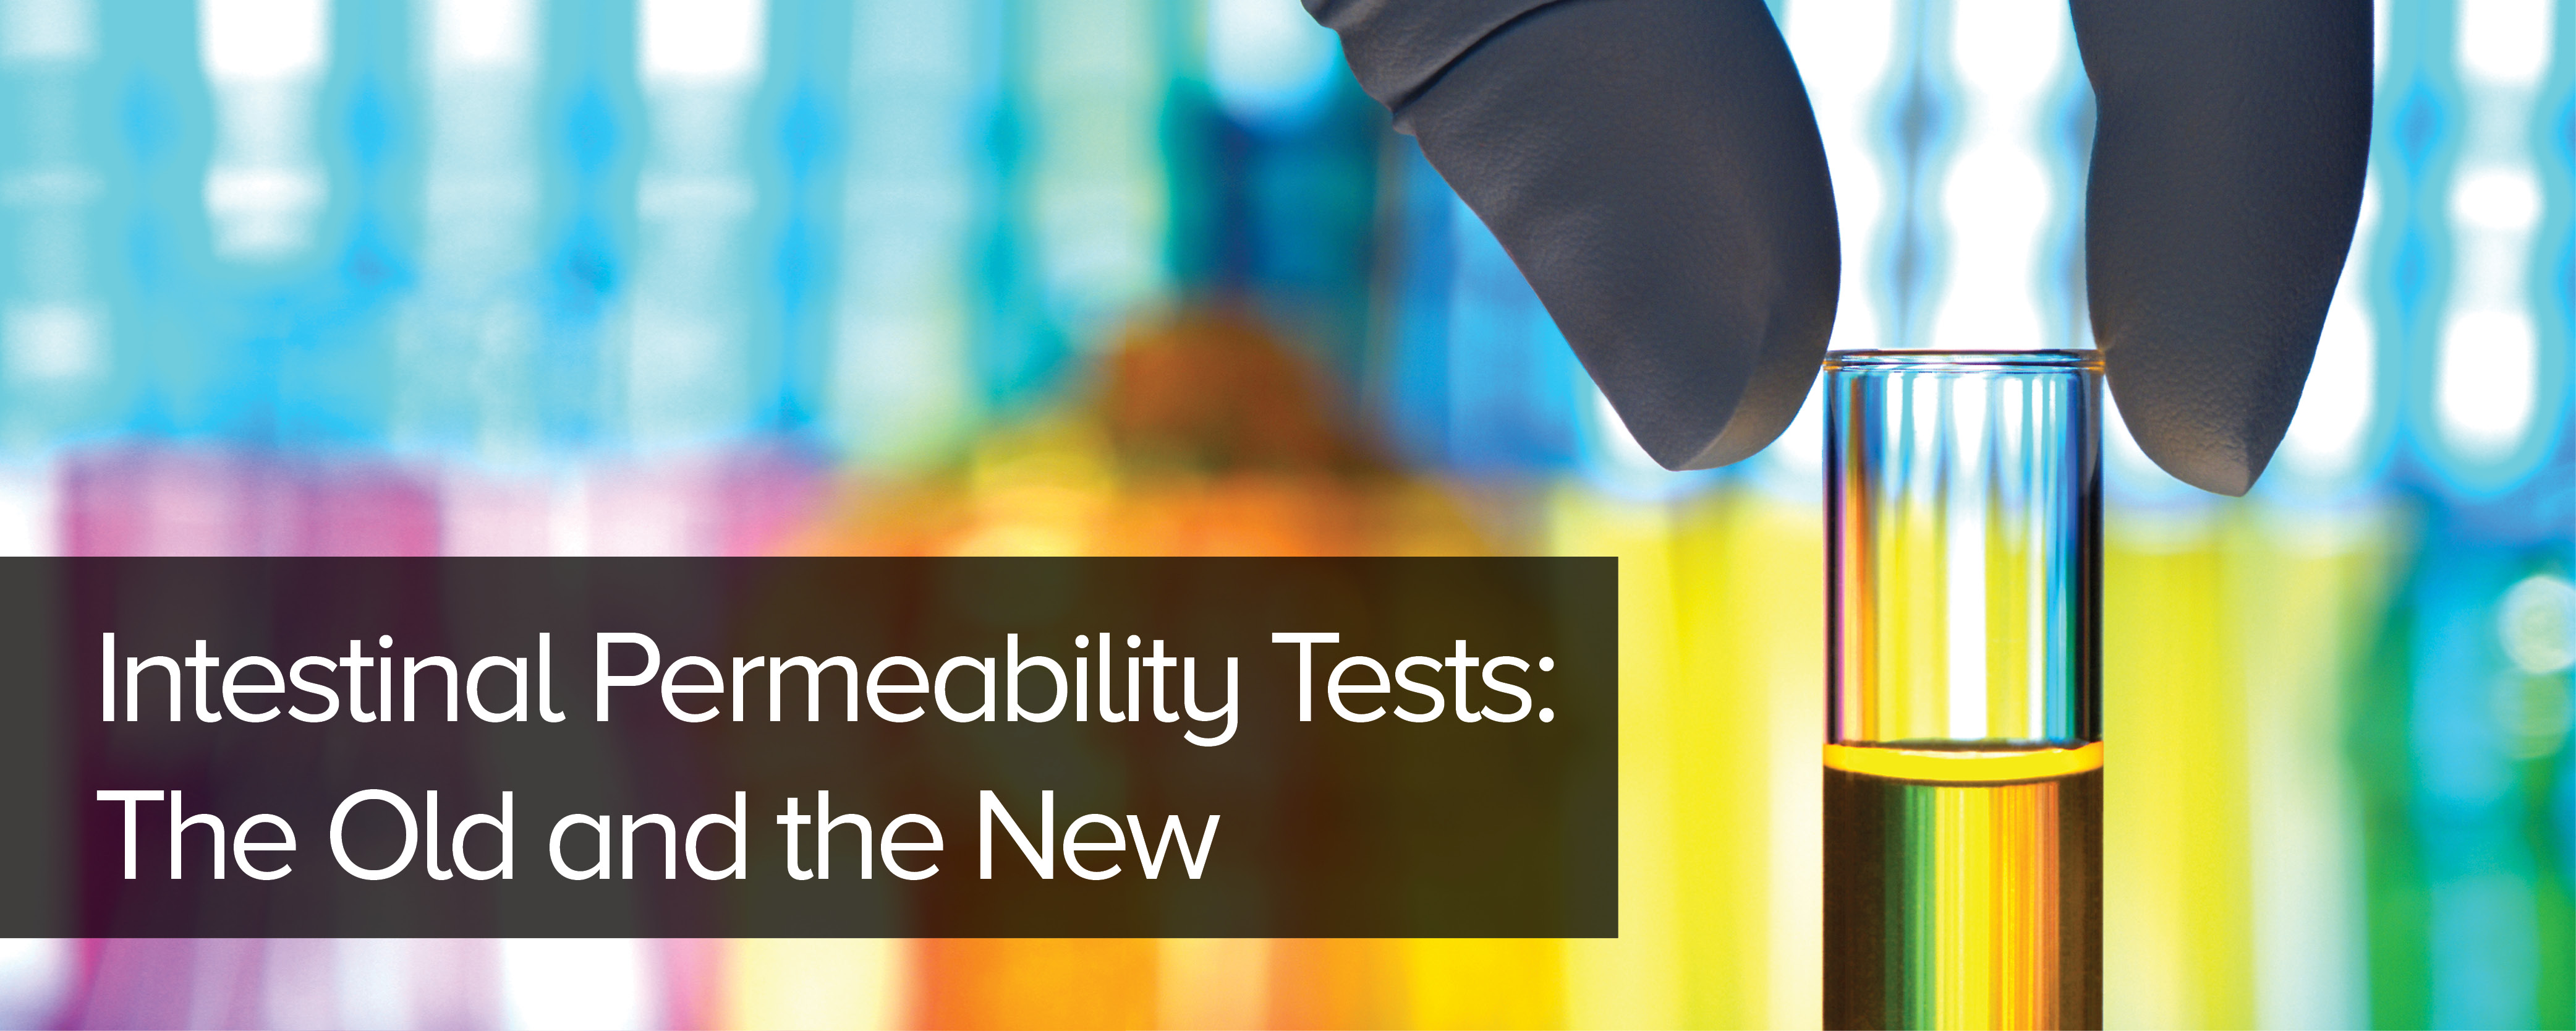 Intestinal Permeability Tests: The Old and the New